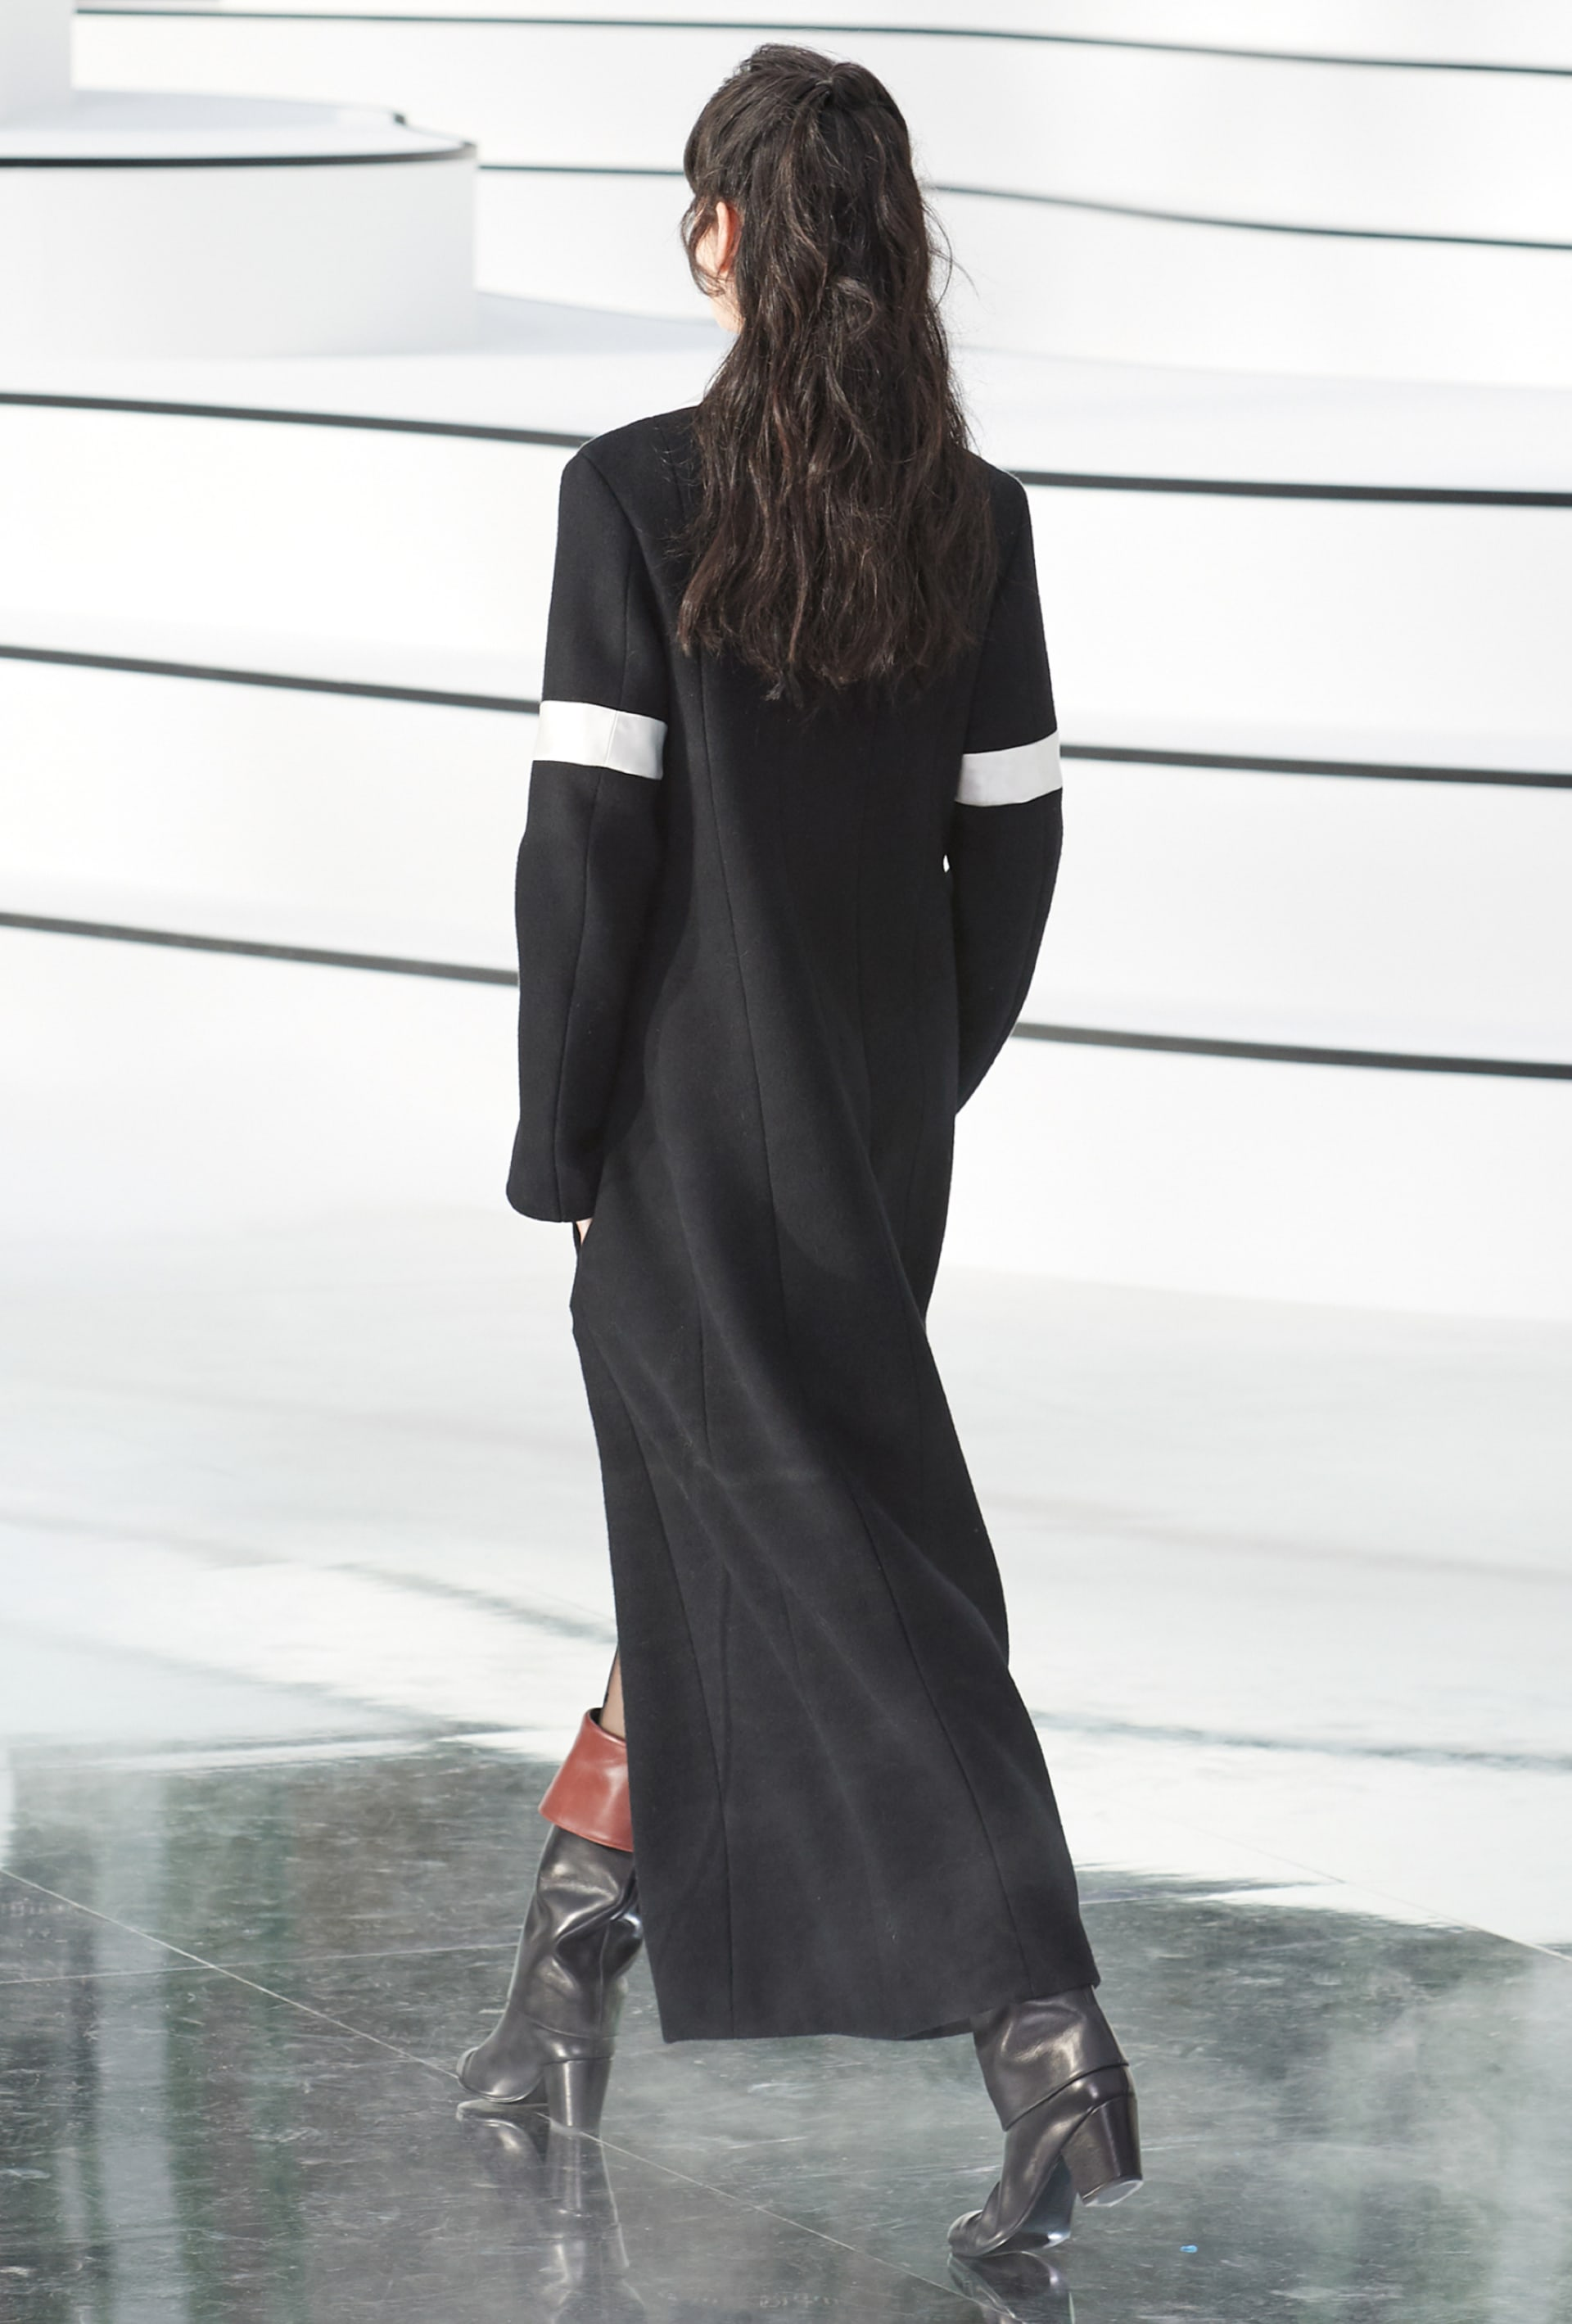 Additional image 2 - Look  45 -  - Fall-Winter 2020/21